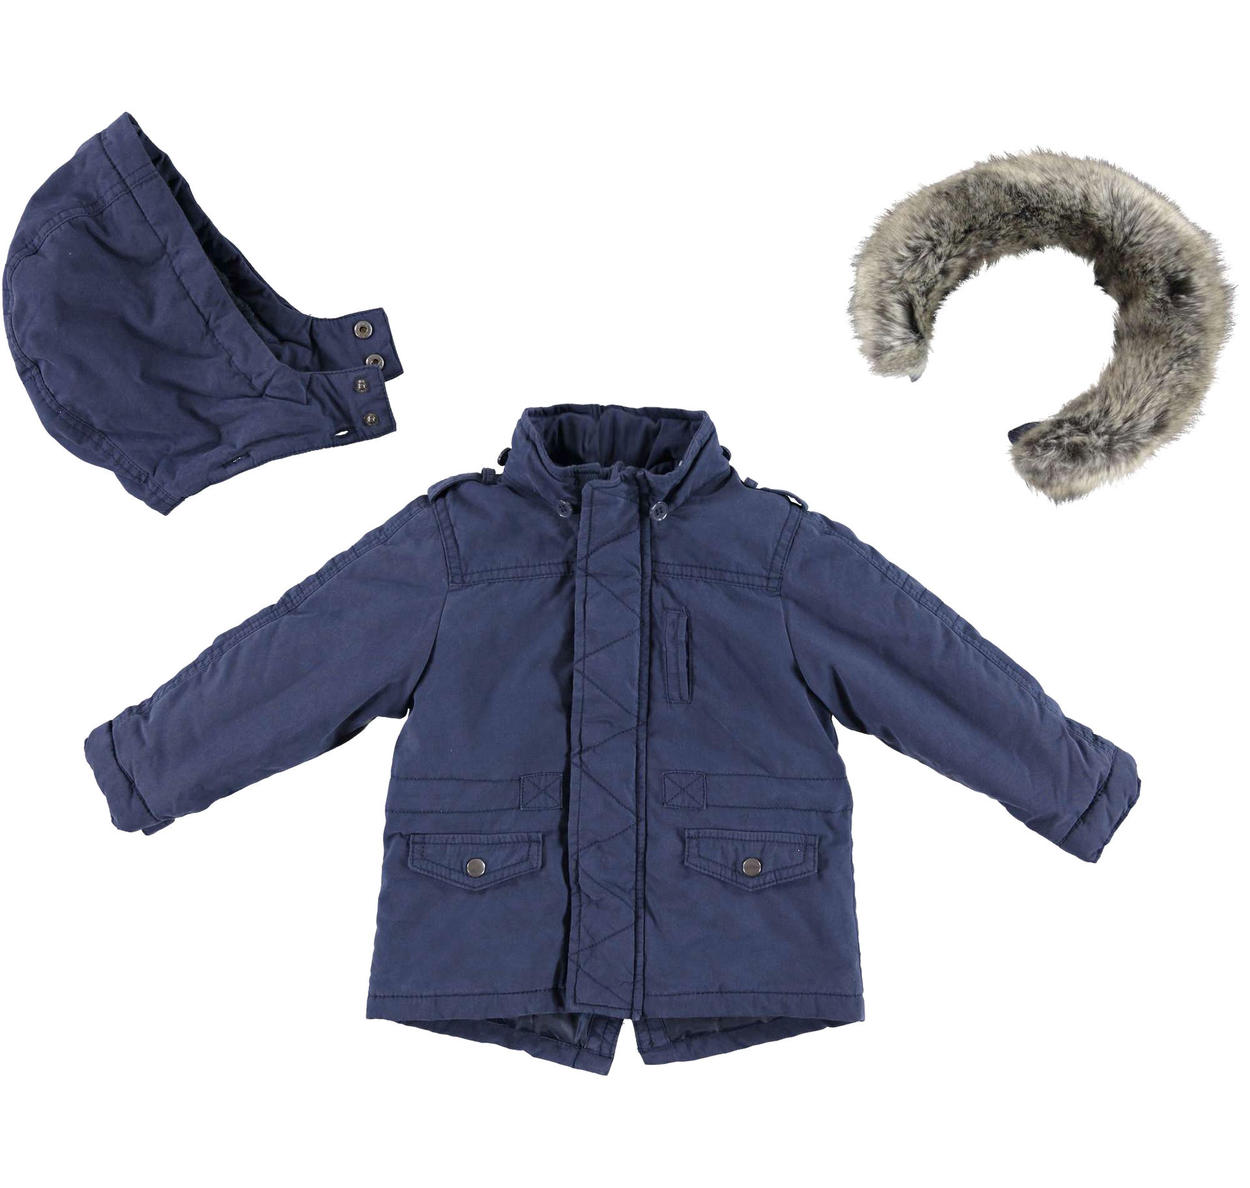 dce66ecd0 Minibanda winter parka jacket with removable hood and faux fur trim ...